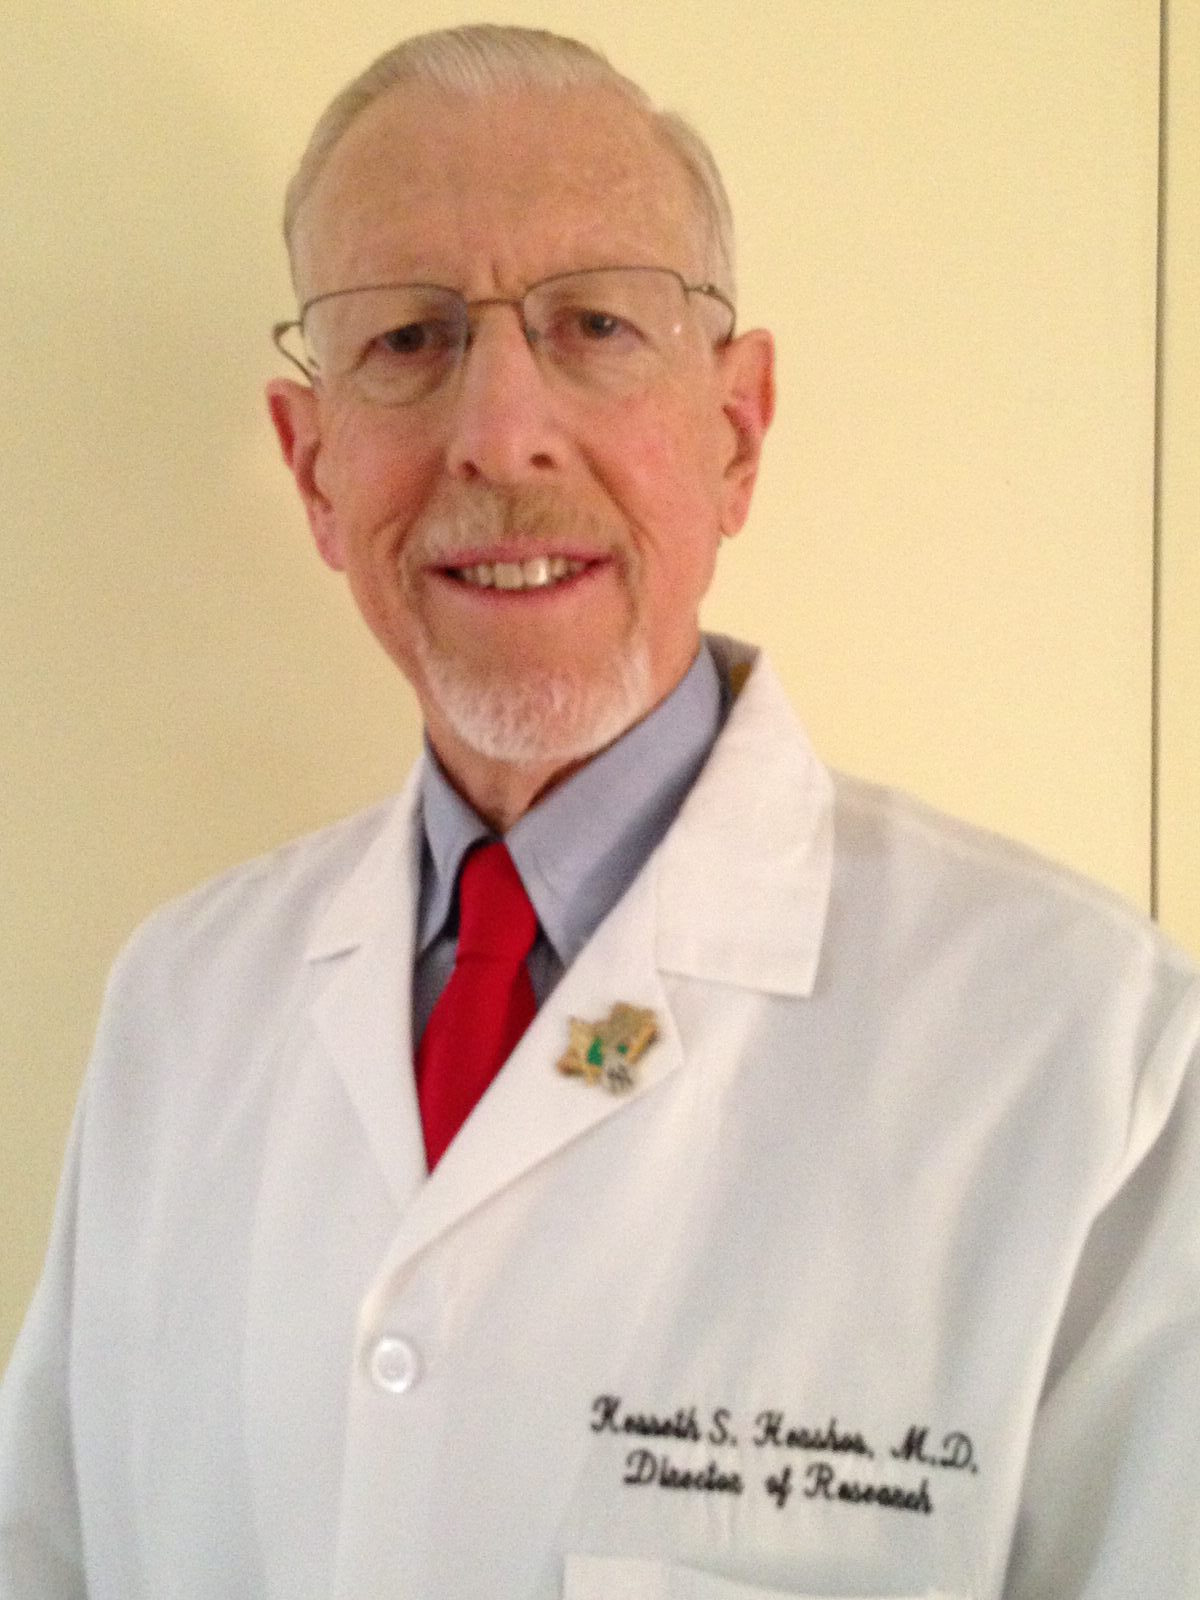 Kenneth S. Hershon, M.D., F.A.C.E.